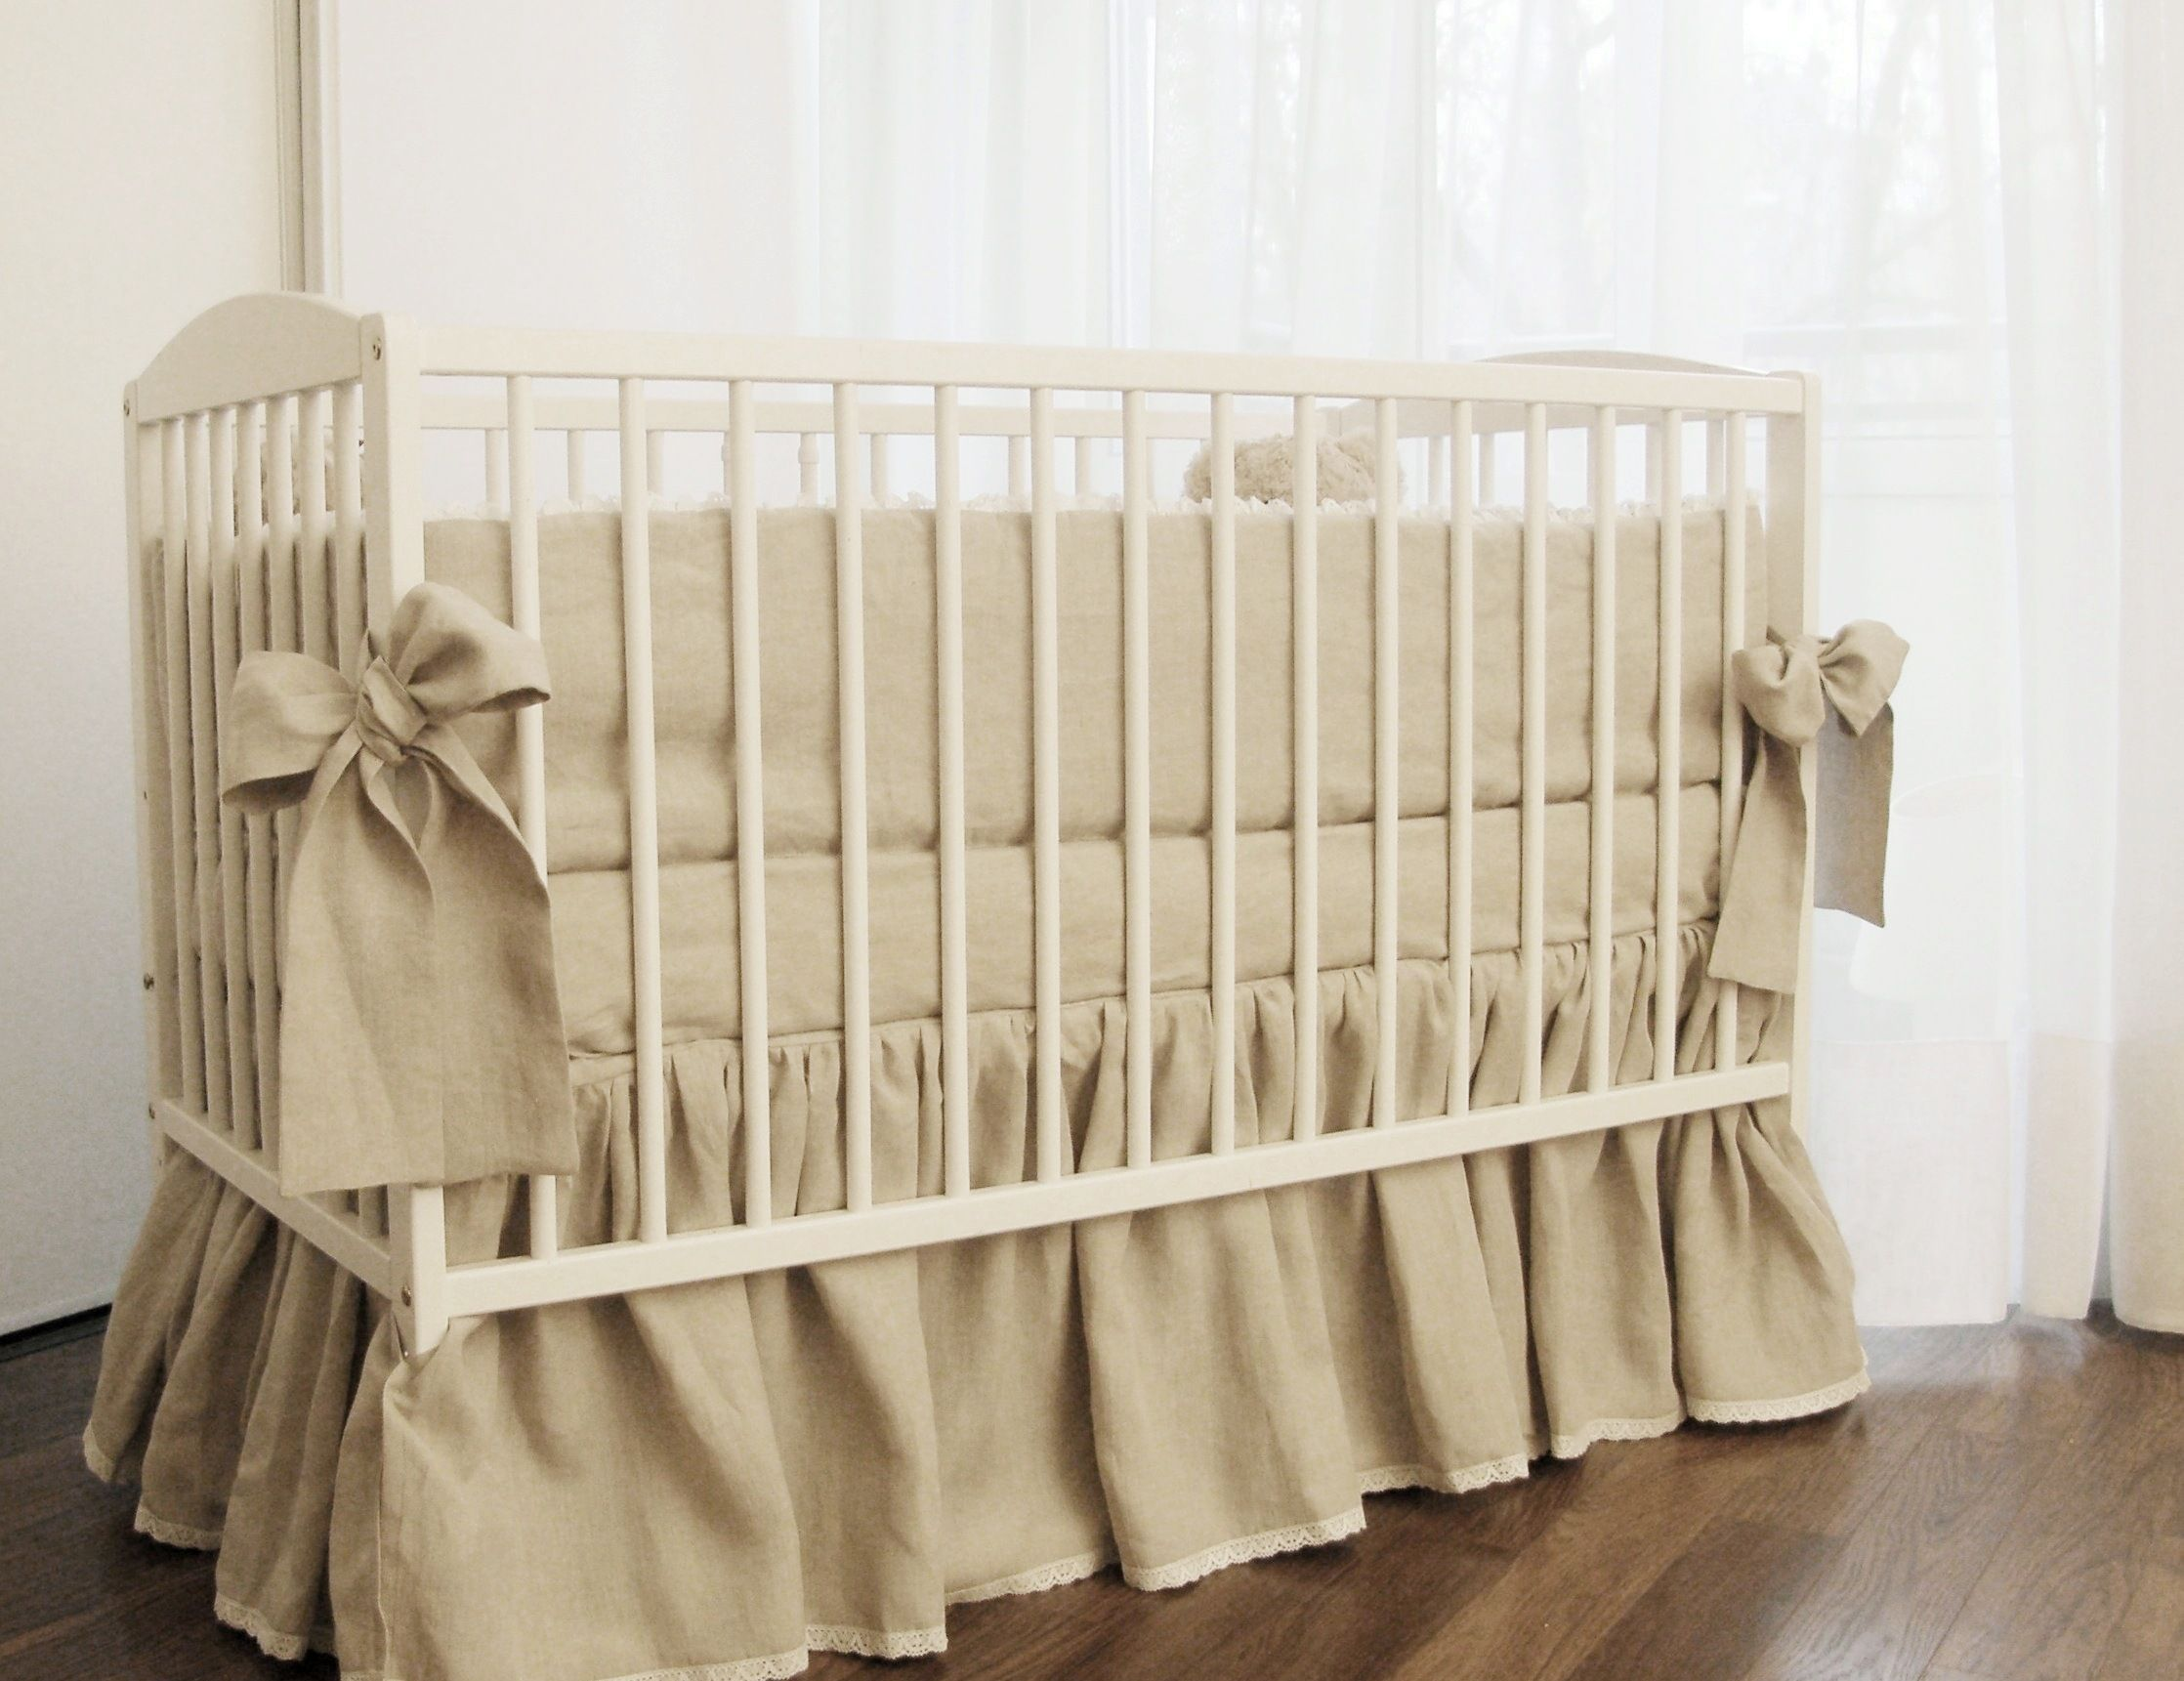 Baby crib gertie - 17 Best Images About Baby On Pinterest Cotton Bassinet And Rachel Pally